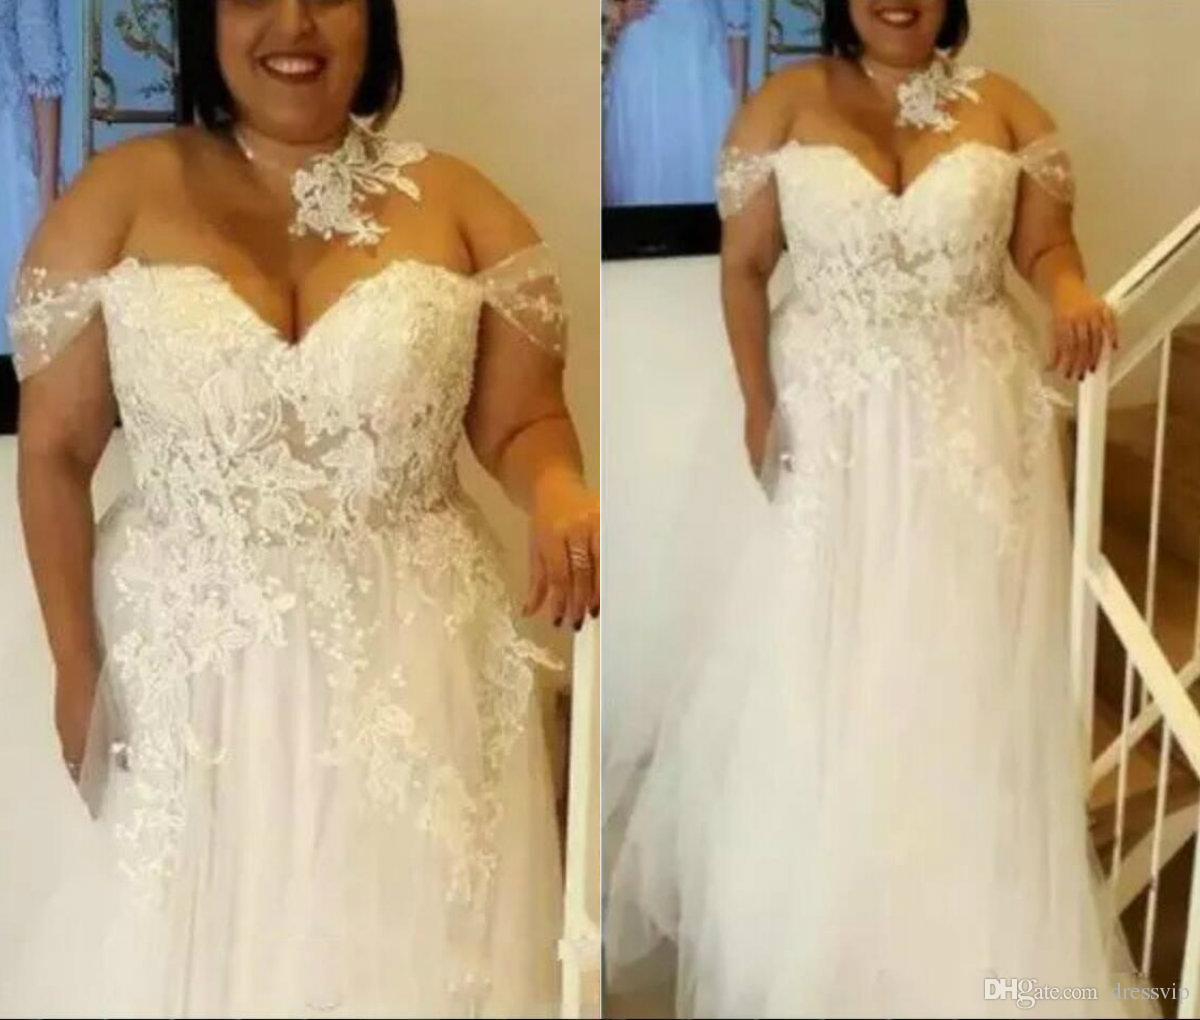 b49d666b43 Plus Size Wedding Dresses Sweetheart Sleeveless Off the Shoulder Lace  Appliques See Through Top Quality Country Beach Bridal Gowns